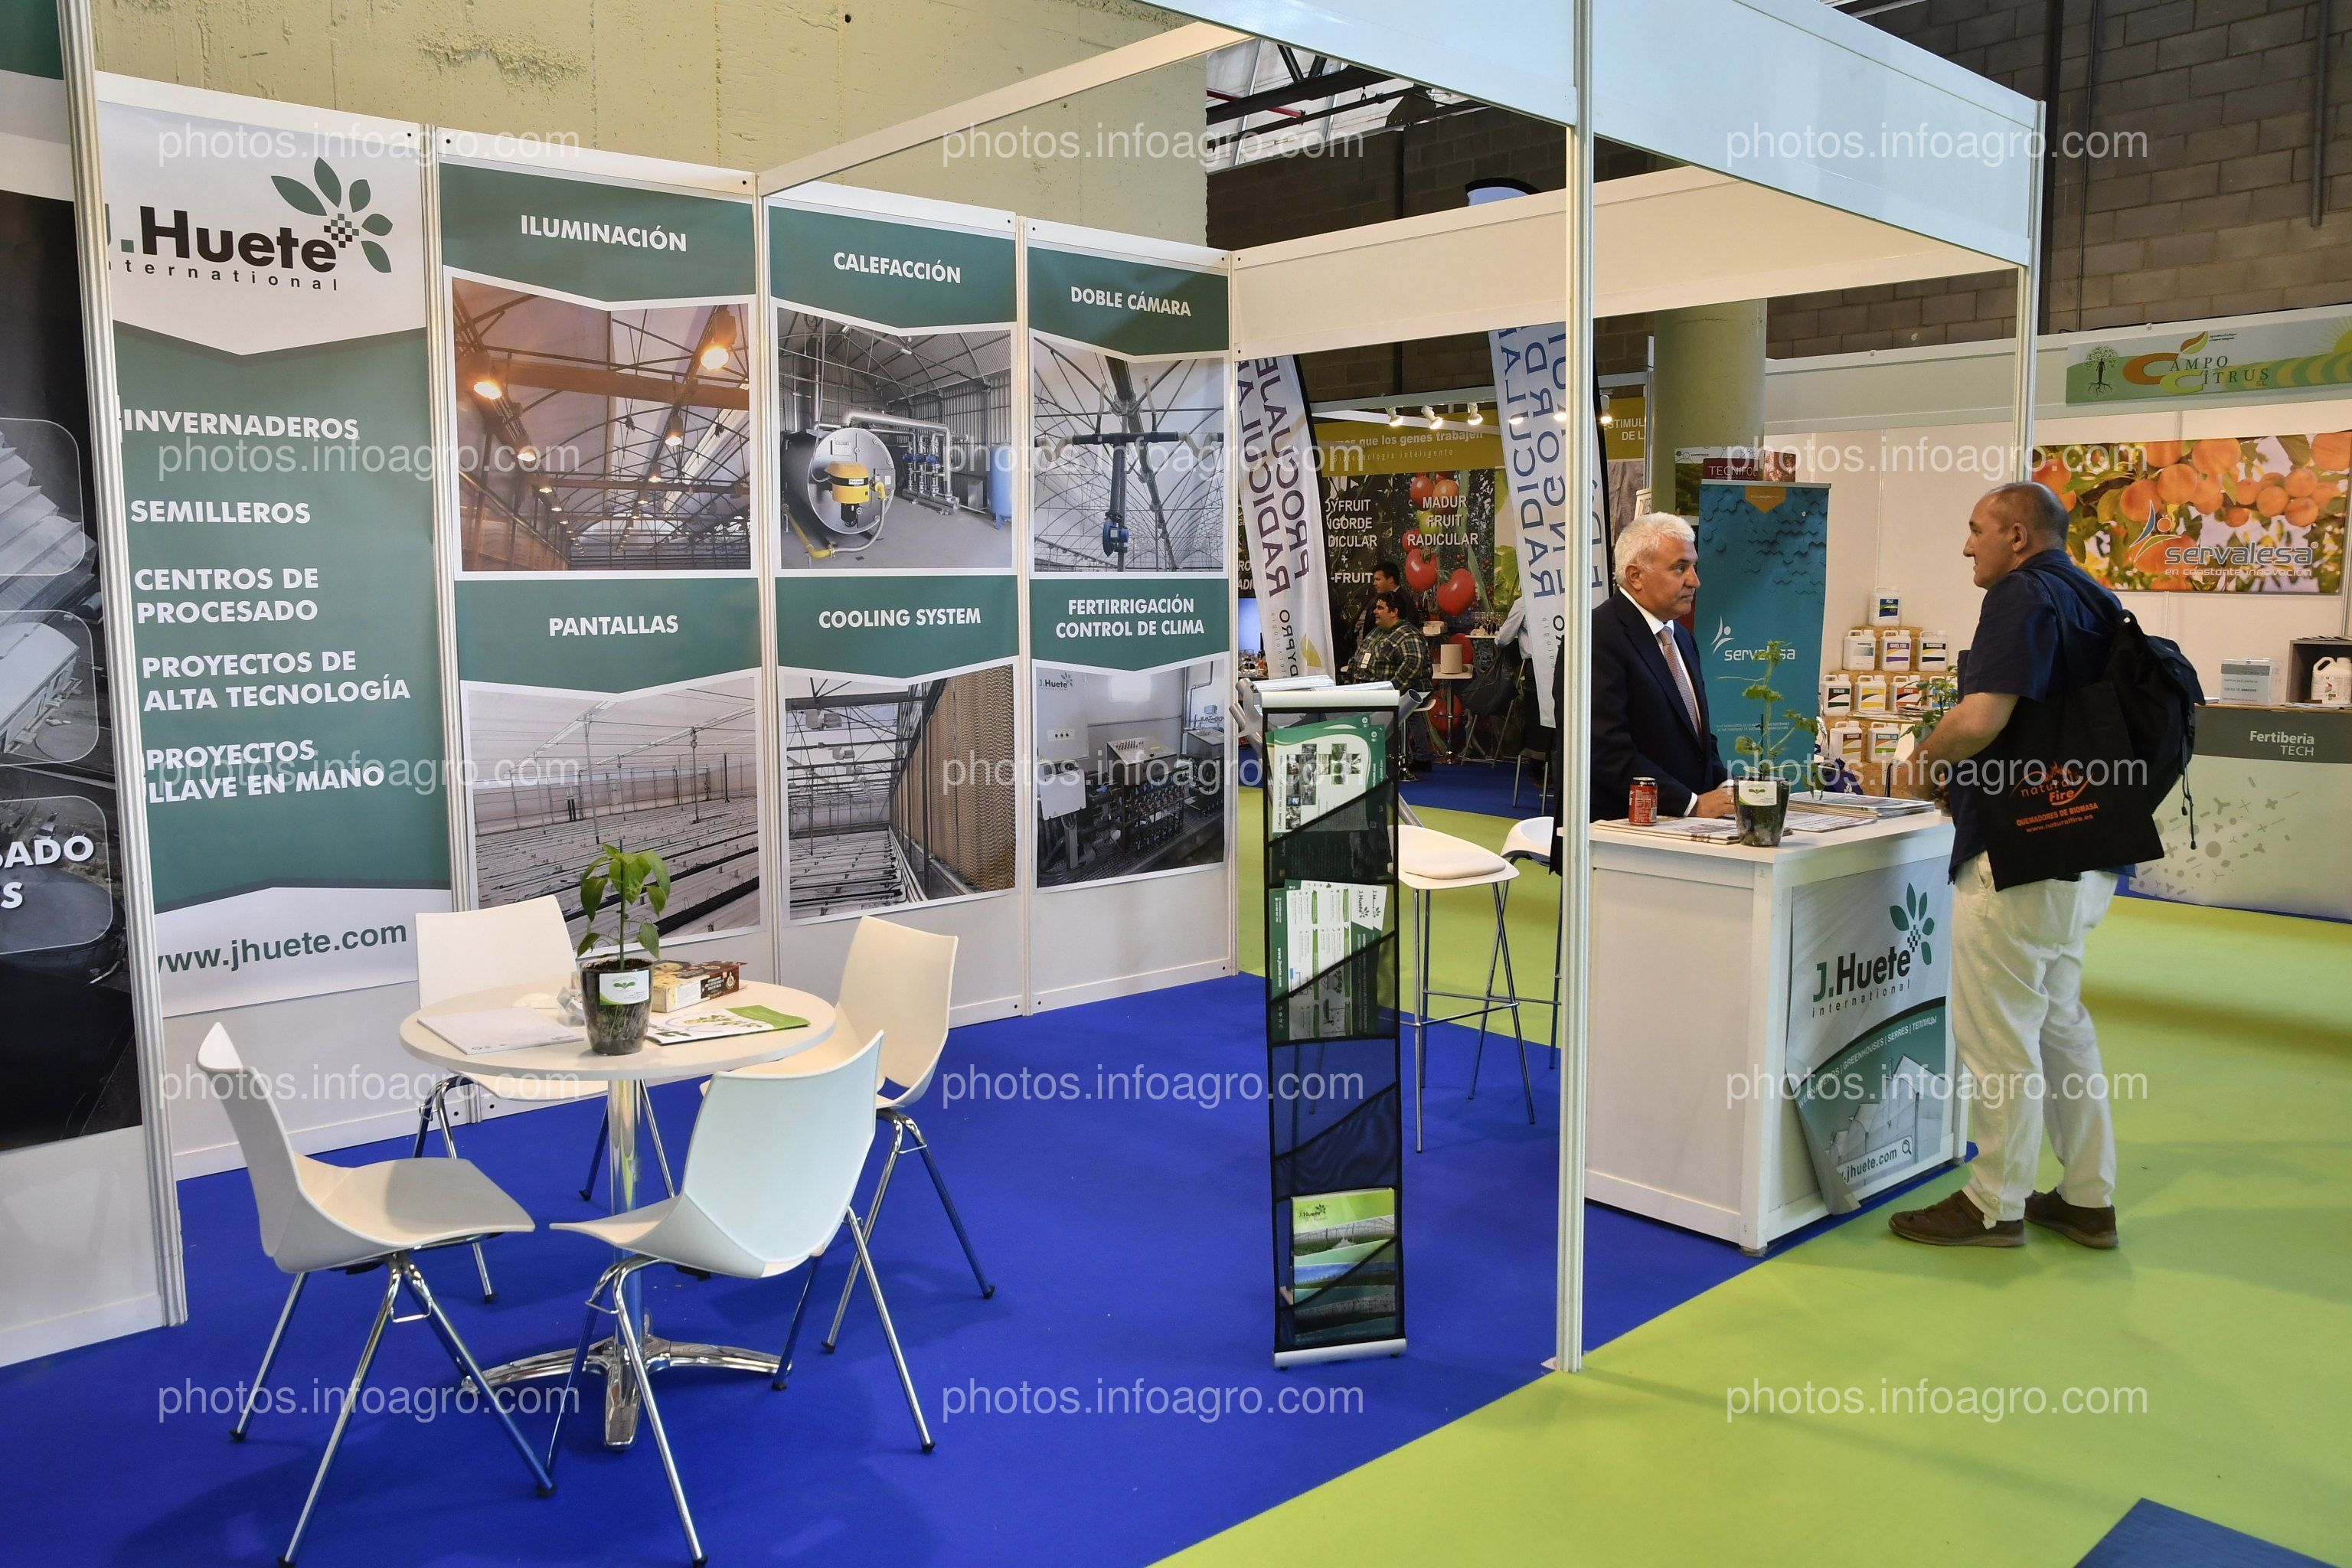 JHuete - Stand Infoagro Exhibition